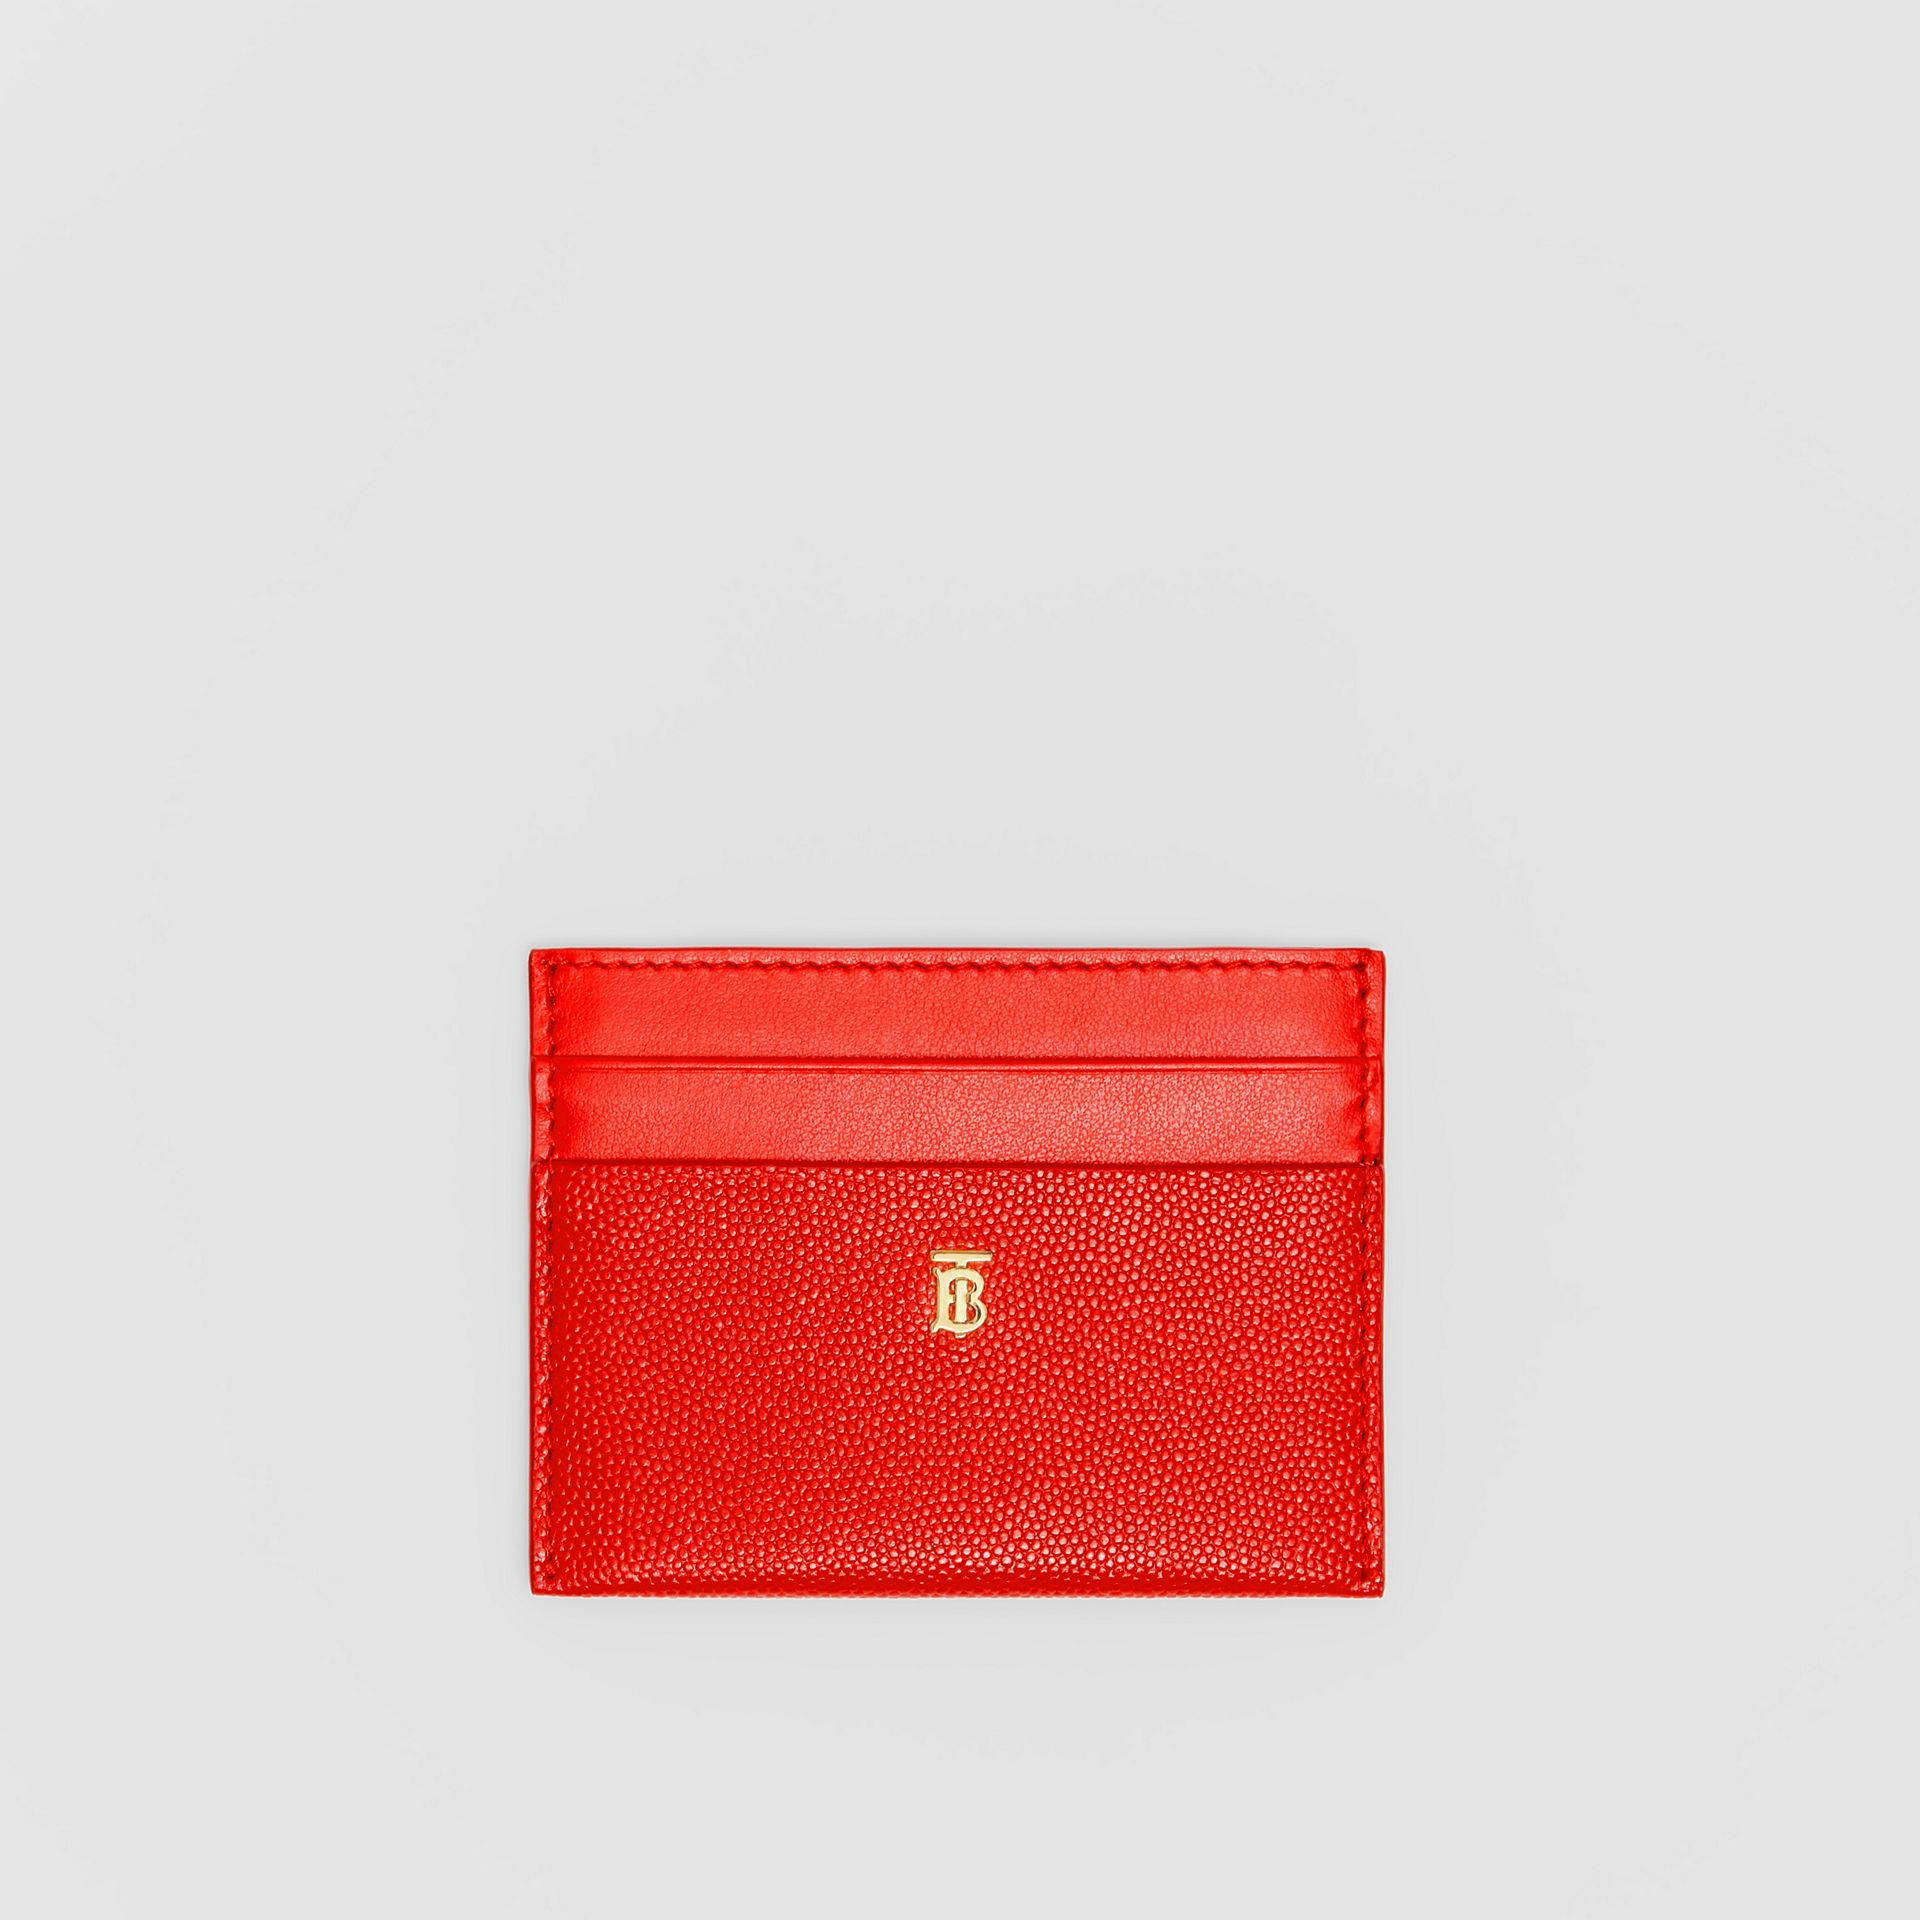 Monogram Motif Leather Card Case in Bright Red - Women | Burberry - gallery image 0